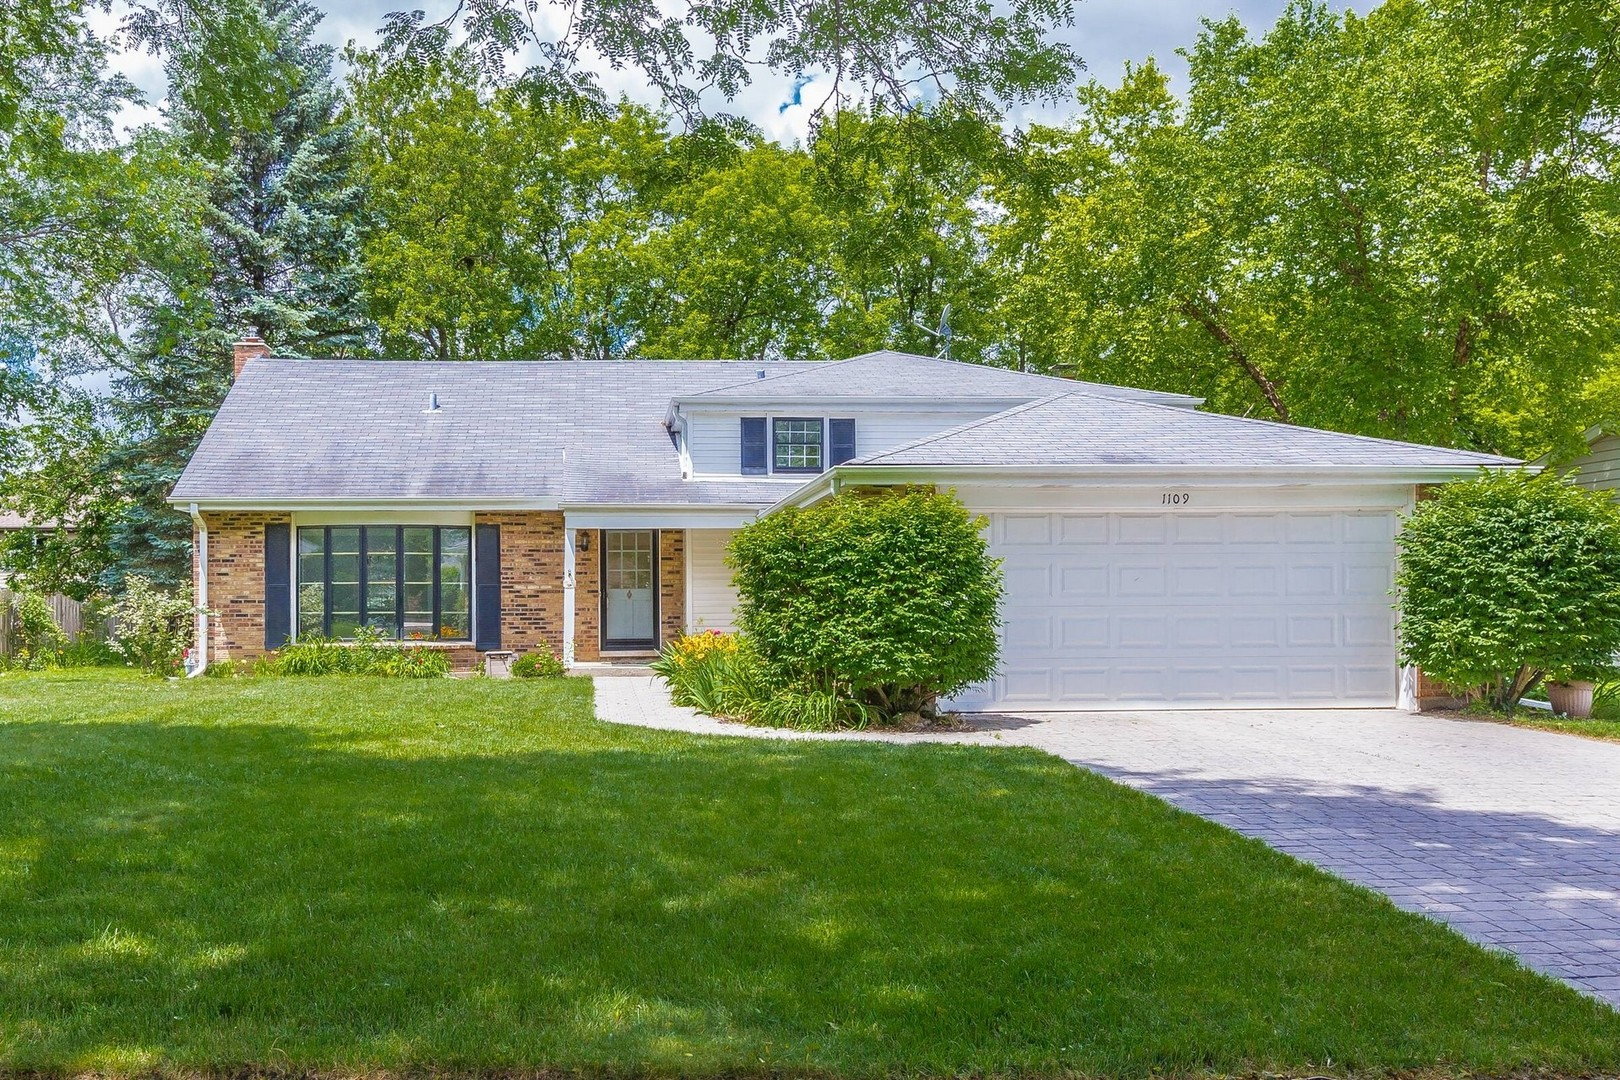 1109 Juniper, LIBERTYVILLE, Illinois, 60048